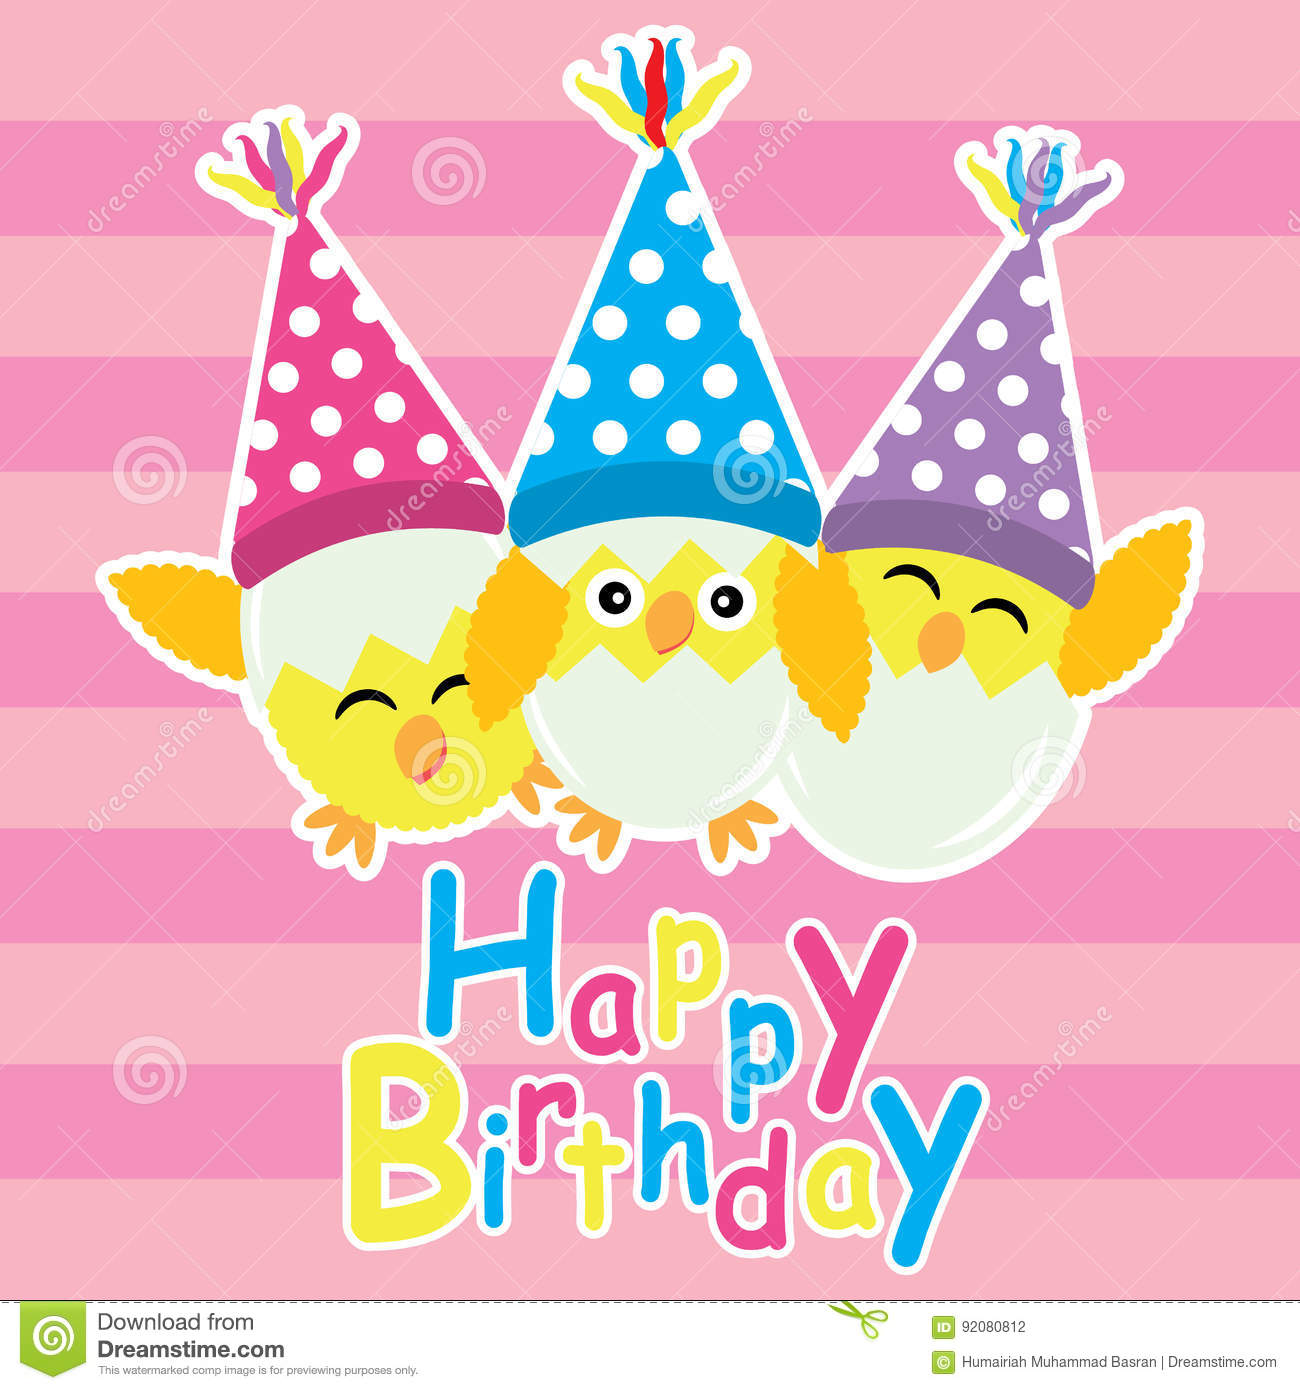 Cute Chicks Are Happy With Birthday Hat Vector Cartoon Postcard Wallpaper And